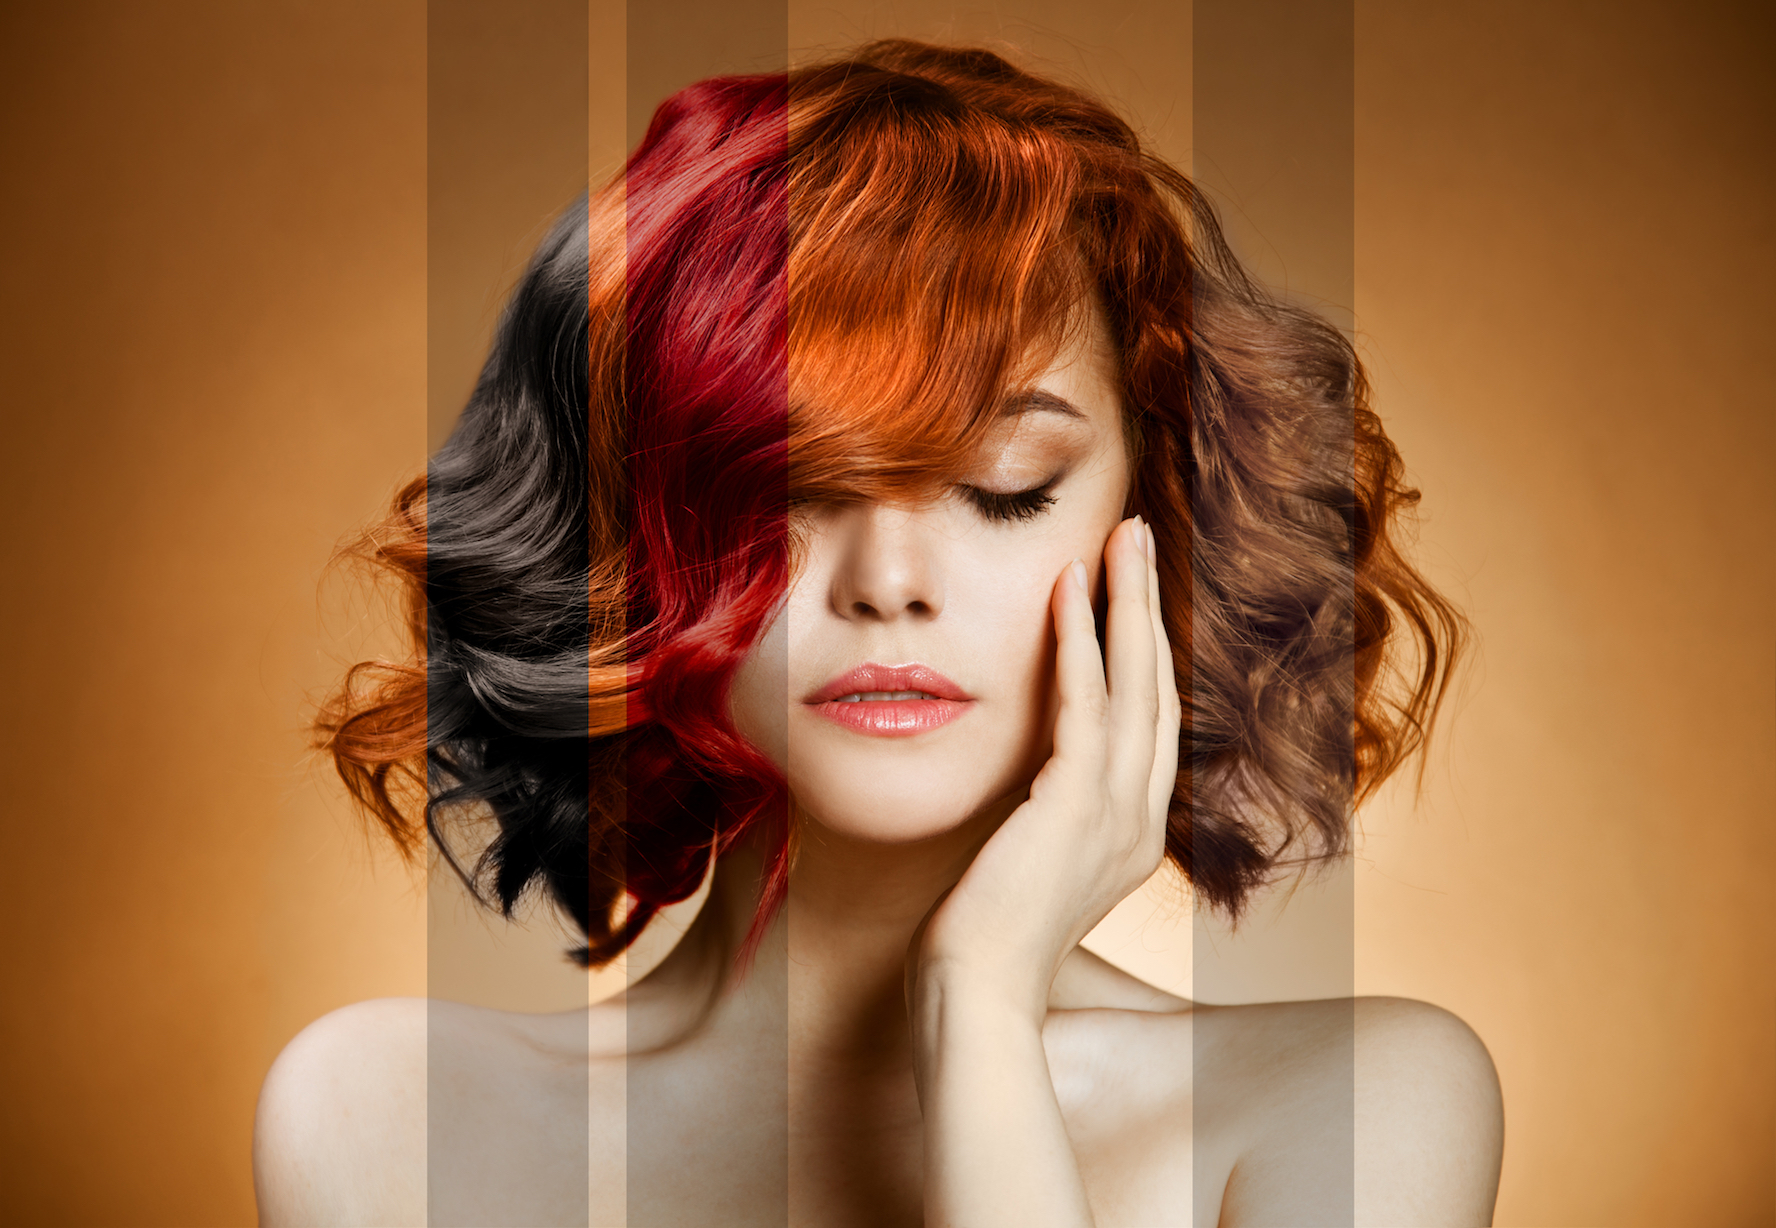 A new study out of the UK has revealed over a hundred new genes responsible for hair color and pigmentation.